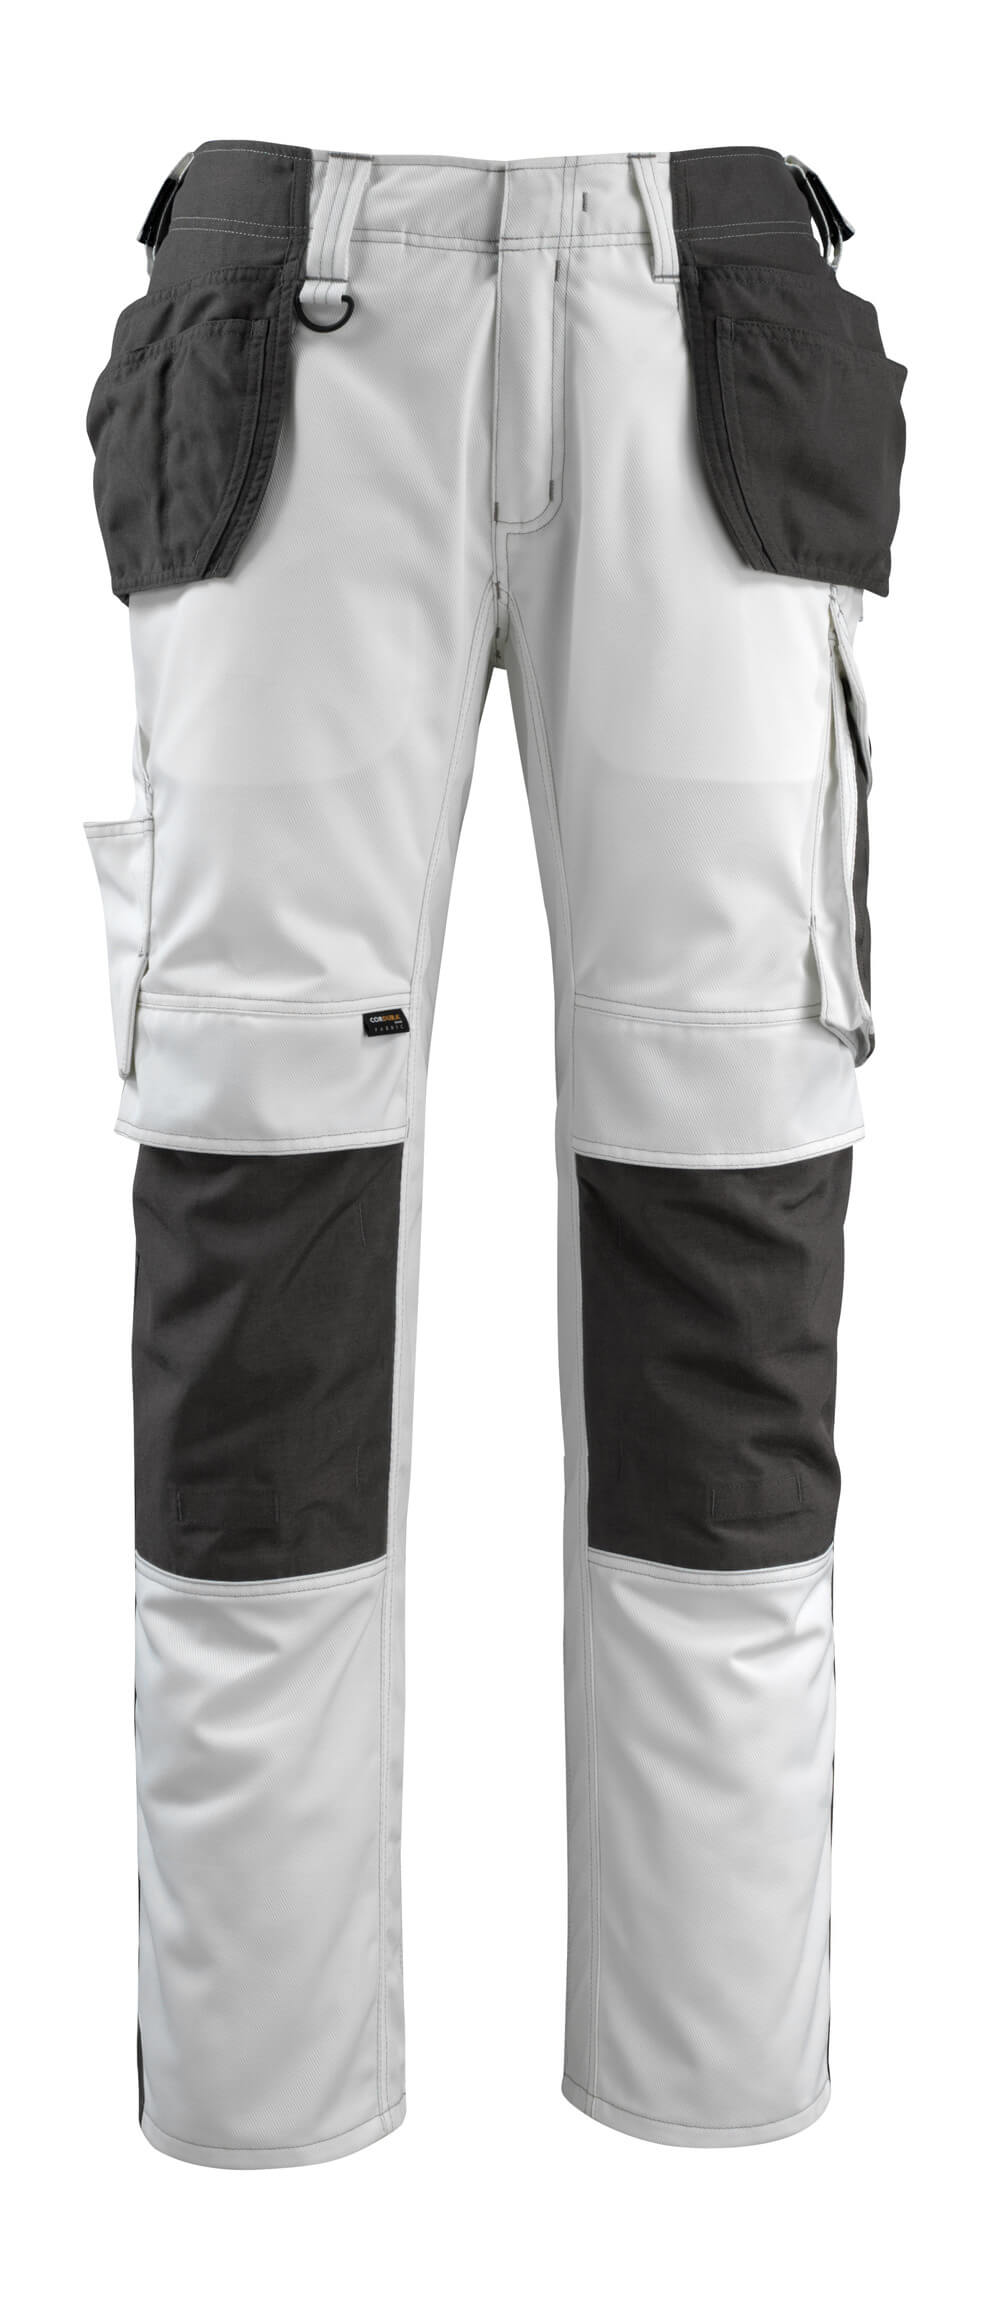 14031-203-0618 Trousers with kneepad pockets and holster pockets - white/dark anthracite